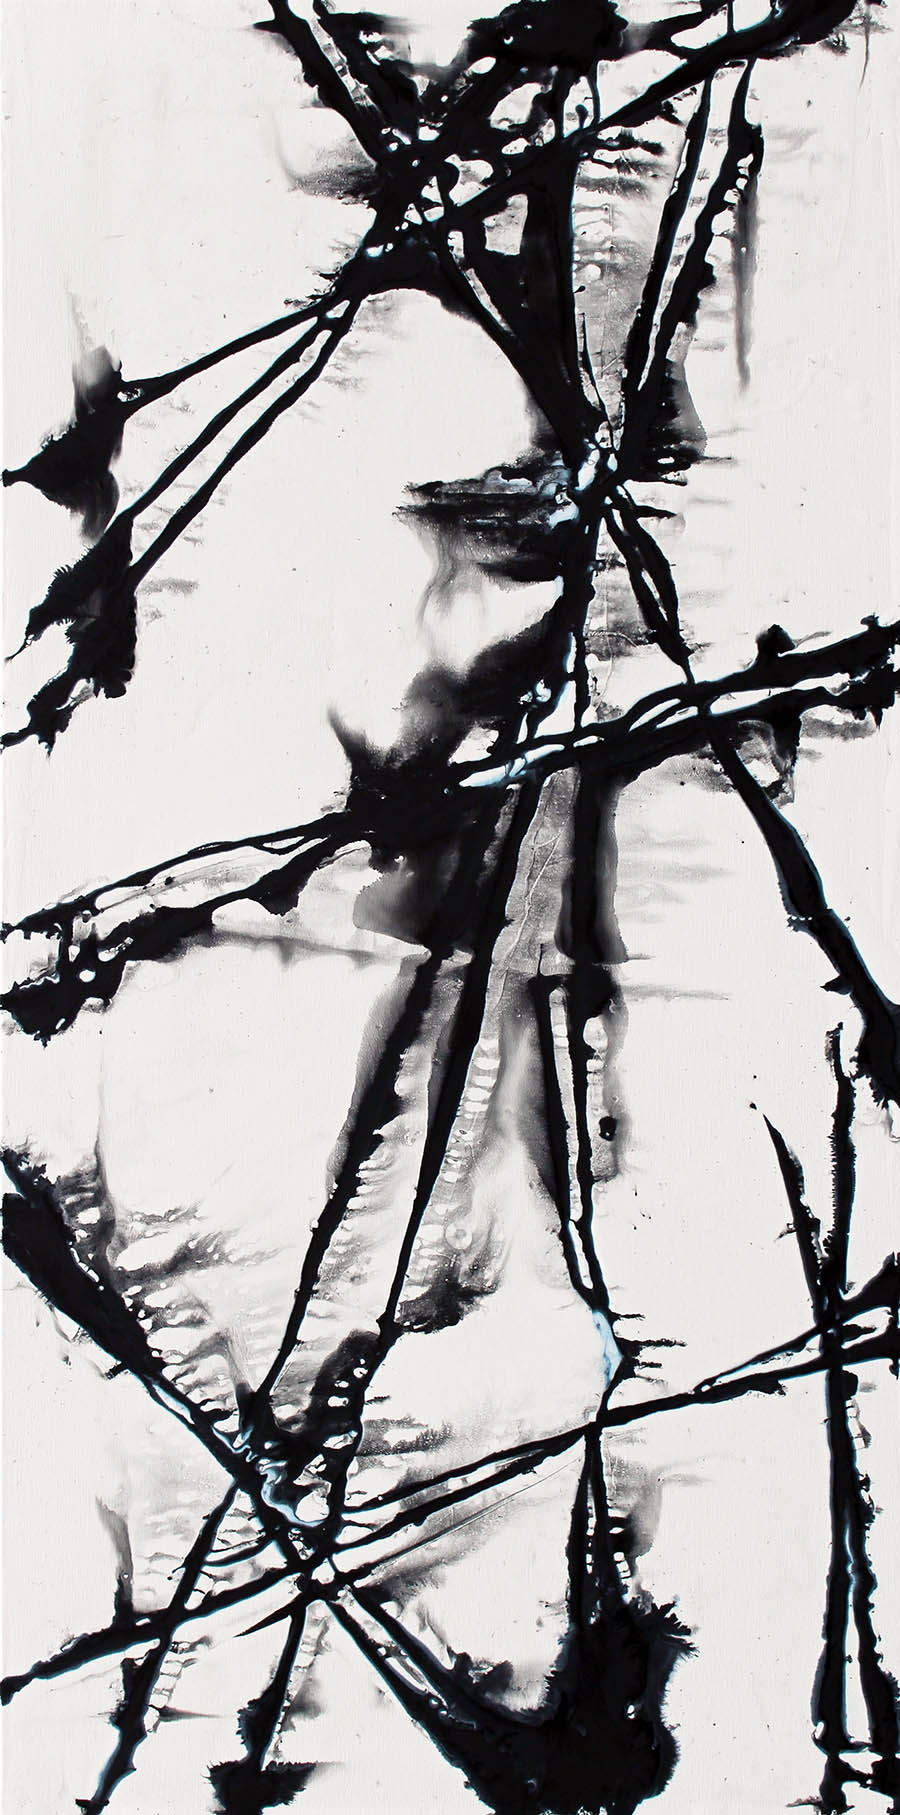 Inkwell - Abstract Art - Eric Siebenthal